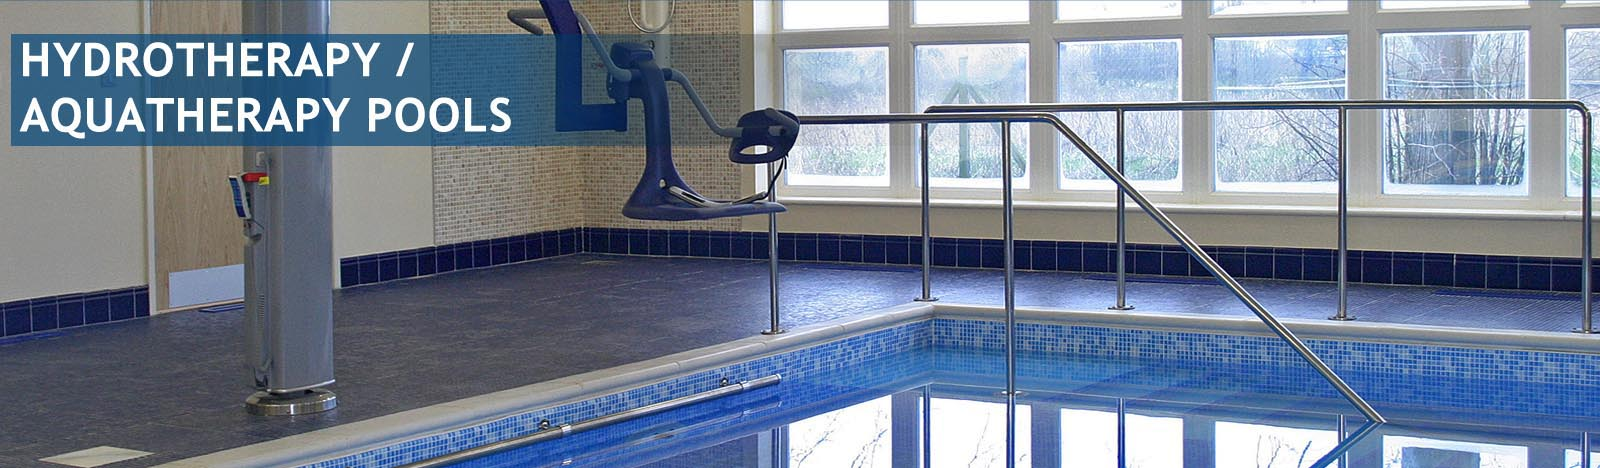 hydrotherapy pools builders london